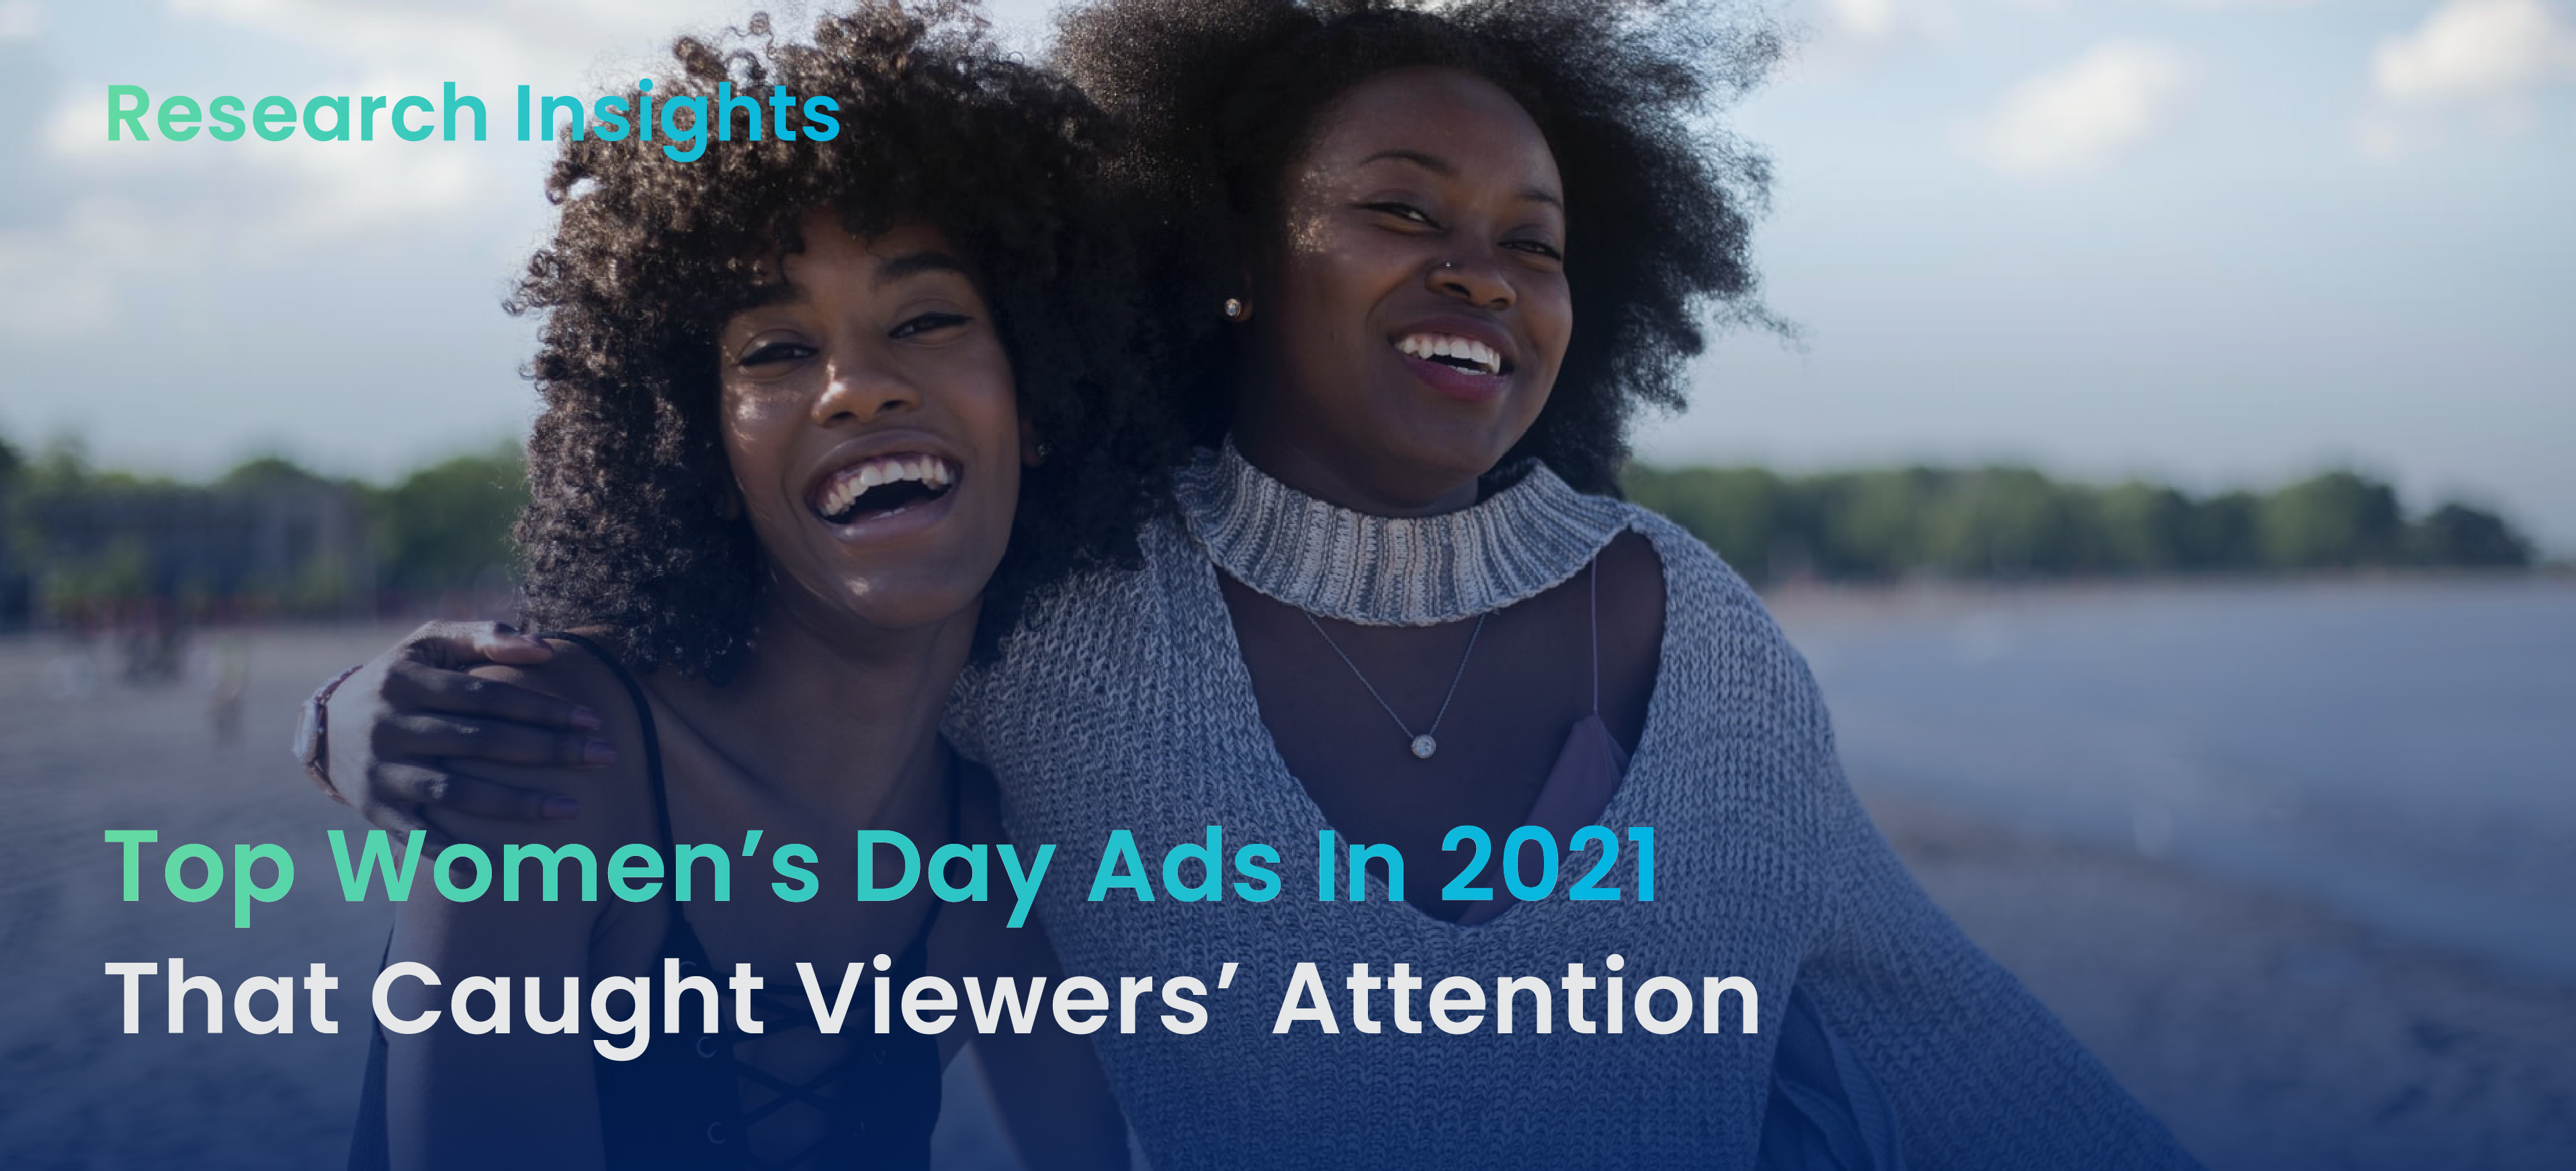 Top Women's Day Ads in 2021 that Caught Viewers' Attention